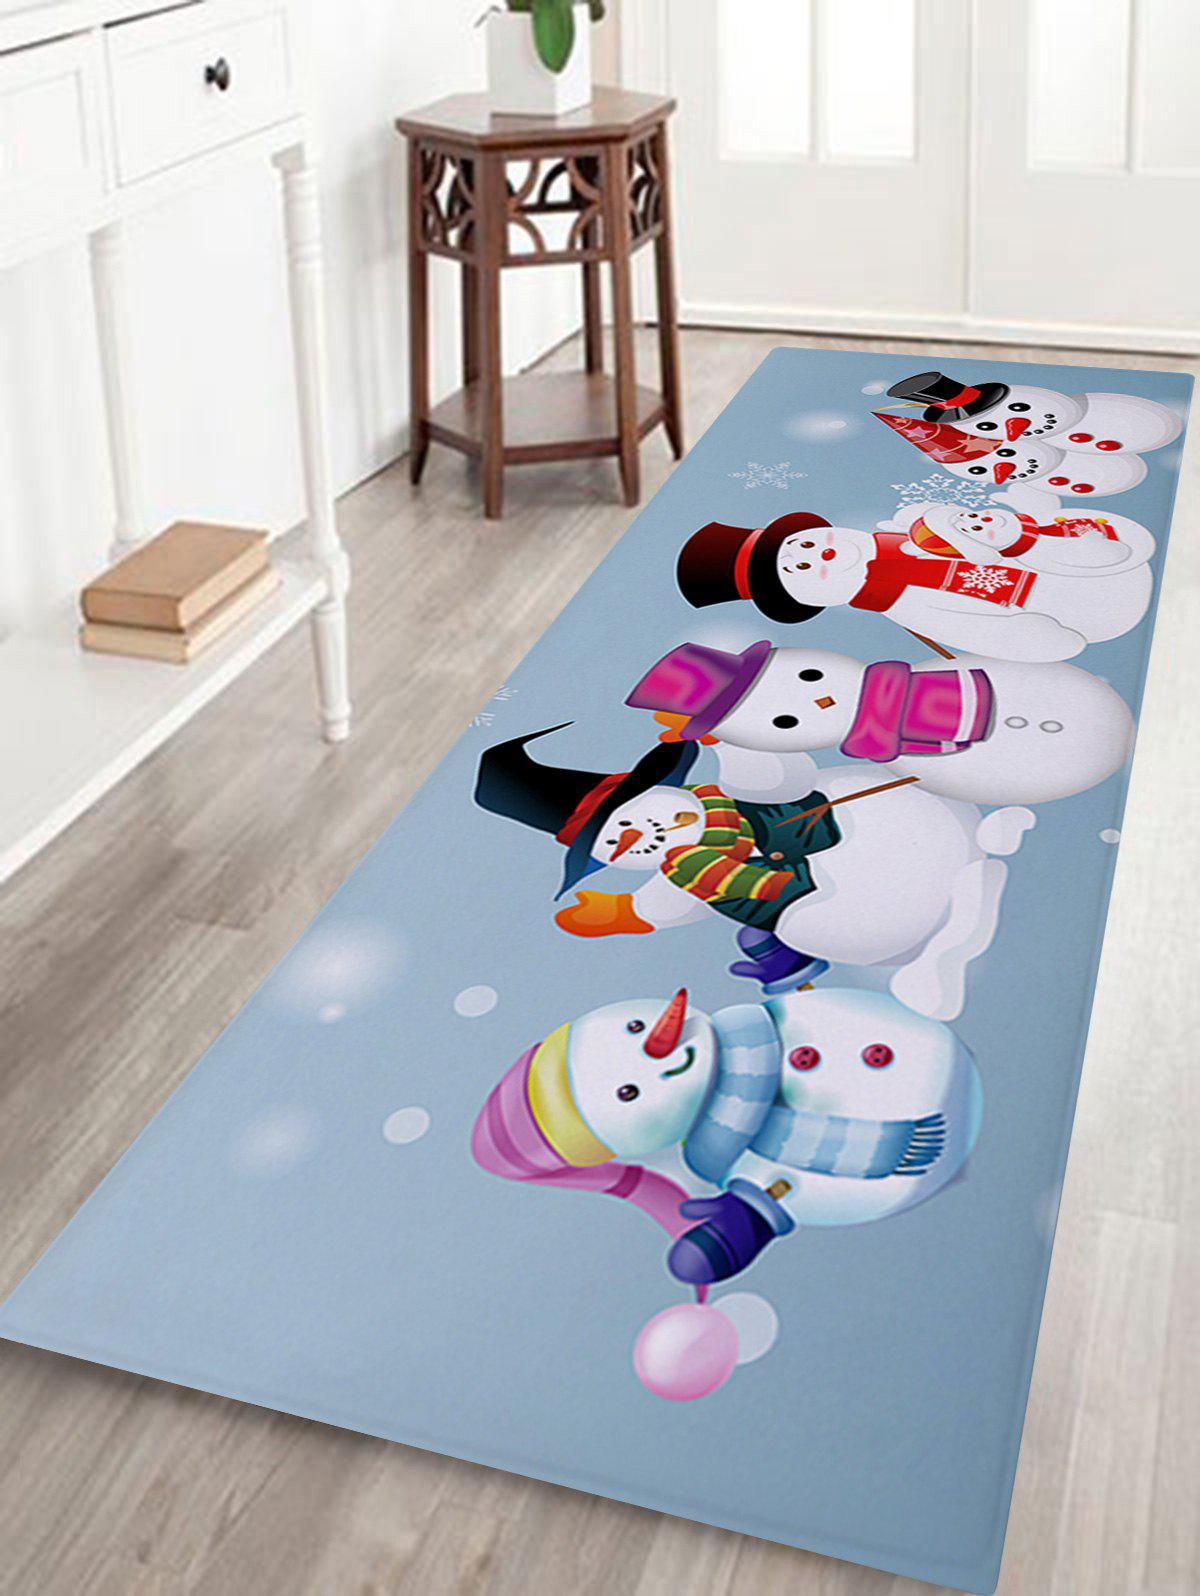 Seven Snowmen Printed Coral Fleece Antislip Bath MatHOME<br><br>Size: W24 INCH * L71 INCH; Color: COLORMIX; Products Type: Bath rugs; Materials: Coral FLeece; Pattern: Snowman; Style: Festival; Shape: Rectangular; Package Contents: 1 x Rug;